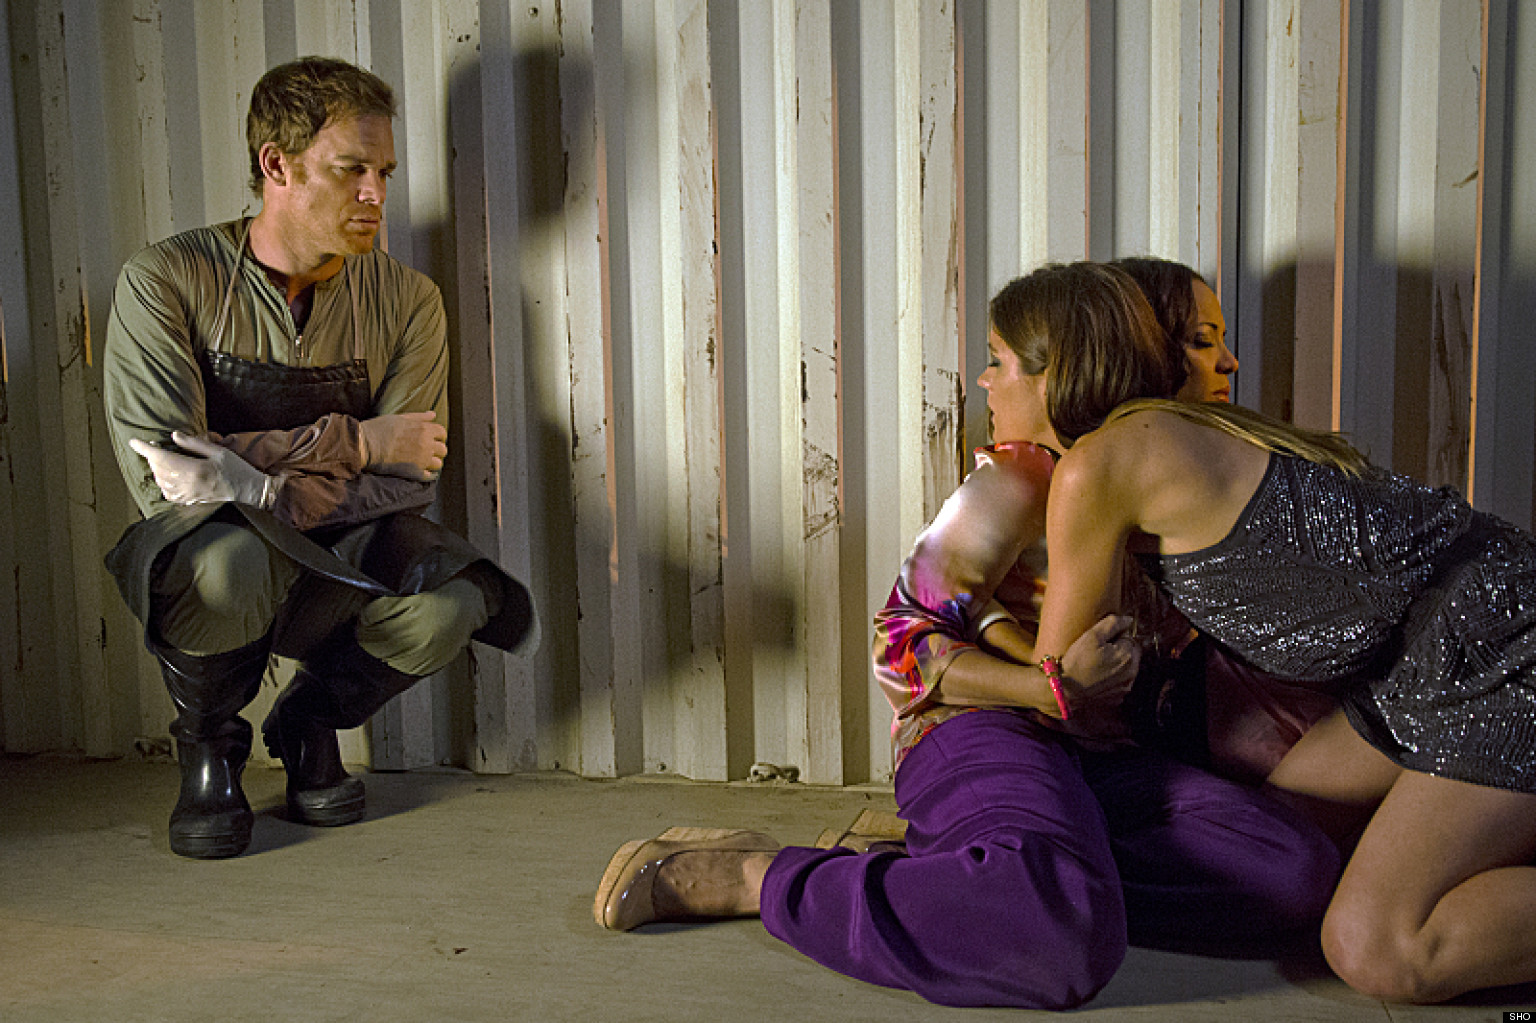 dexter and deb dating Oct 1, 2016 marked the 10th anniversary for the showtime serial killer drama 'dexter' find out where these 14 cast members are now.